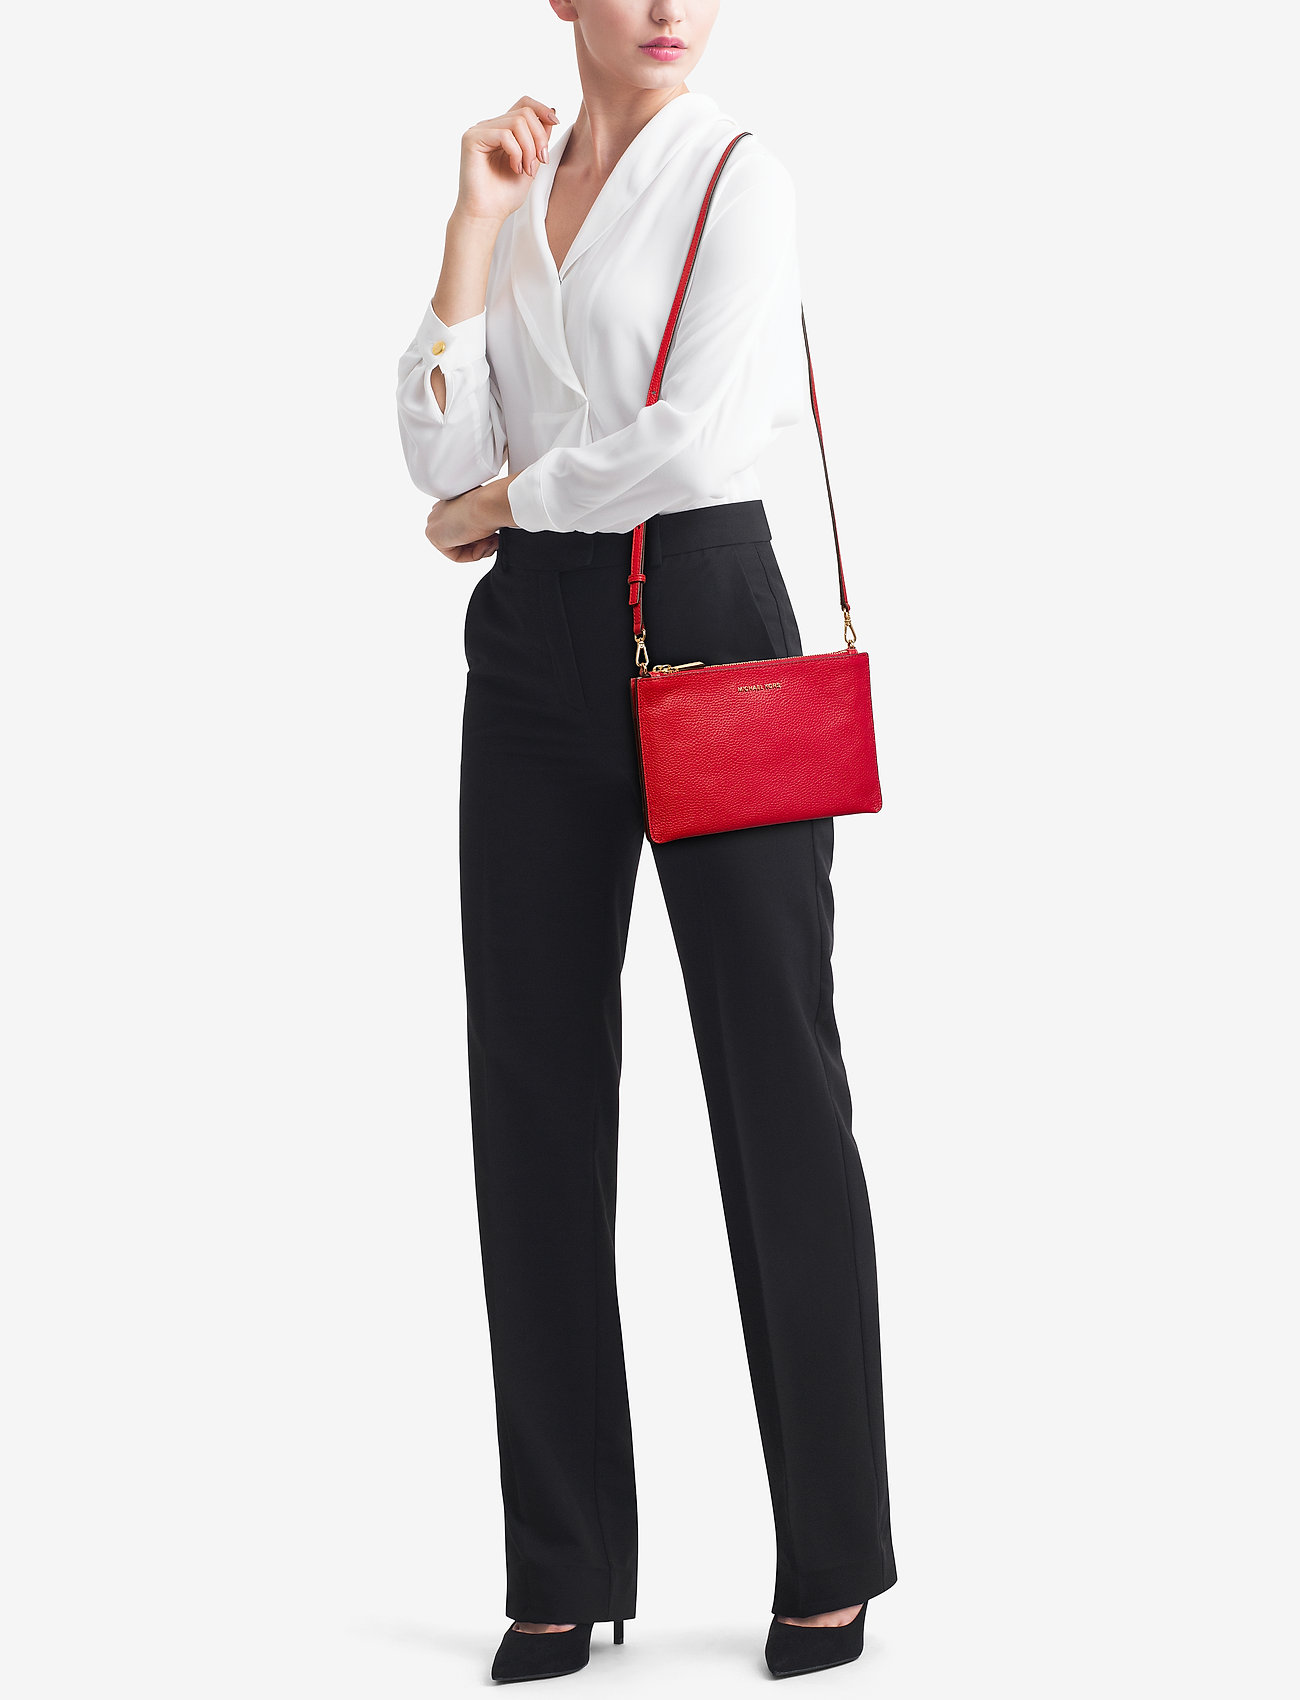 Michael Kors Bags LG DBL POUCH XBODY - BRIGHT RED